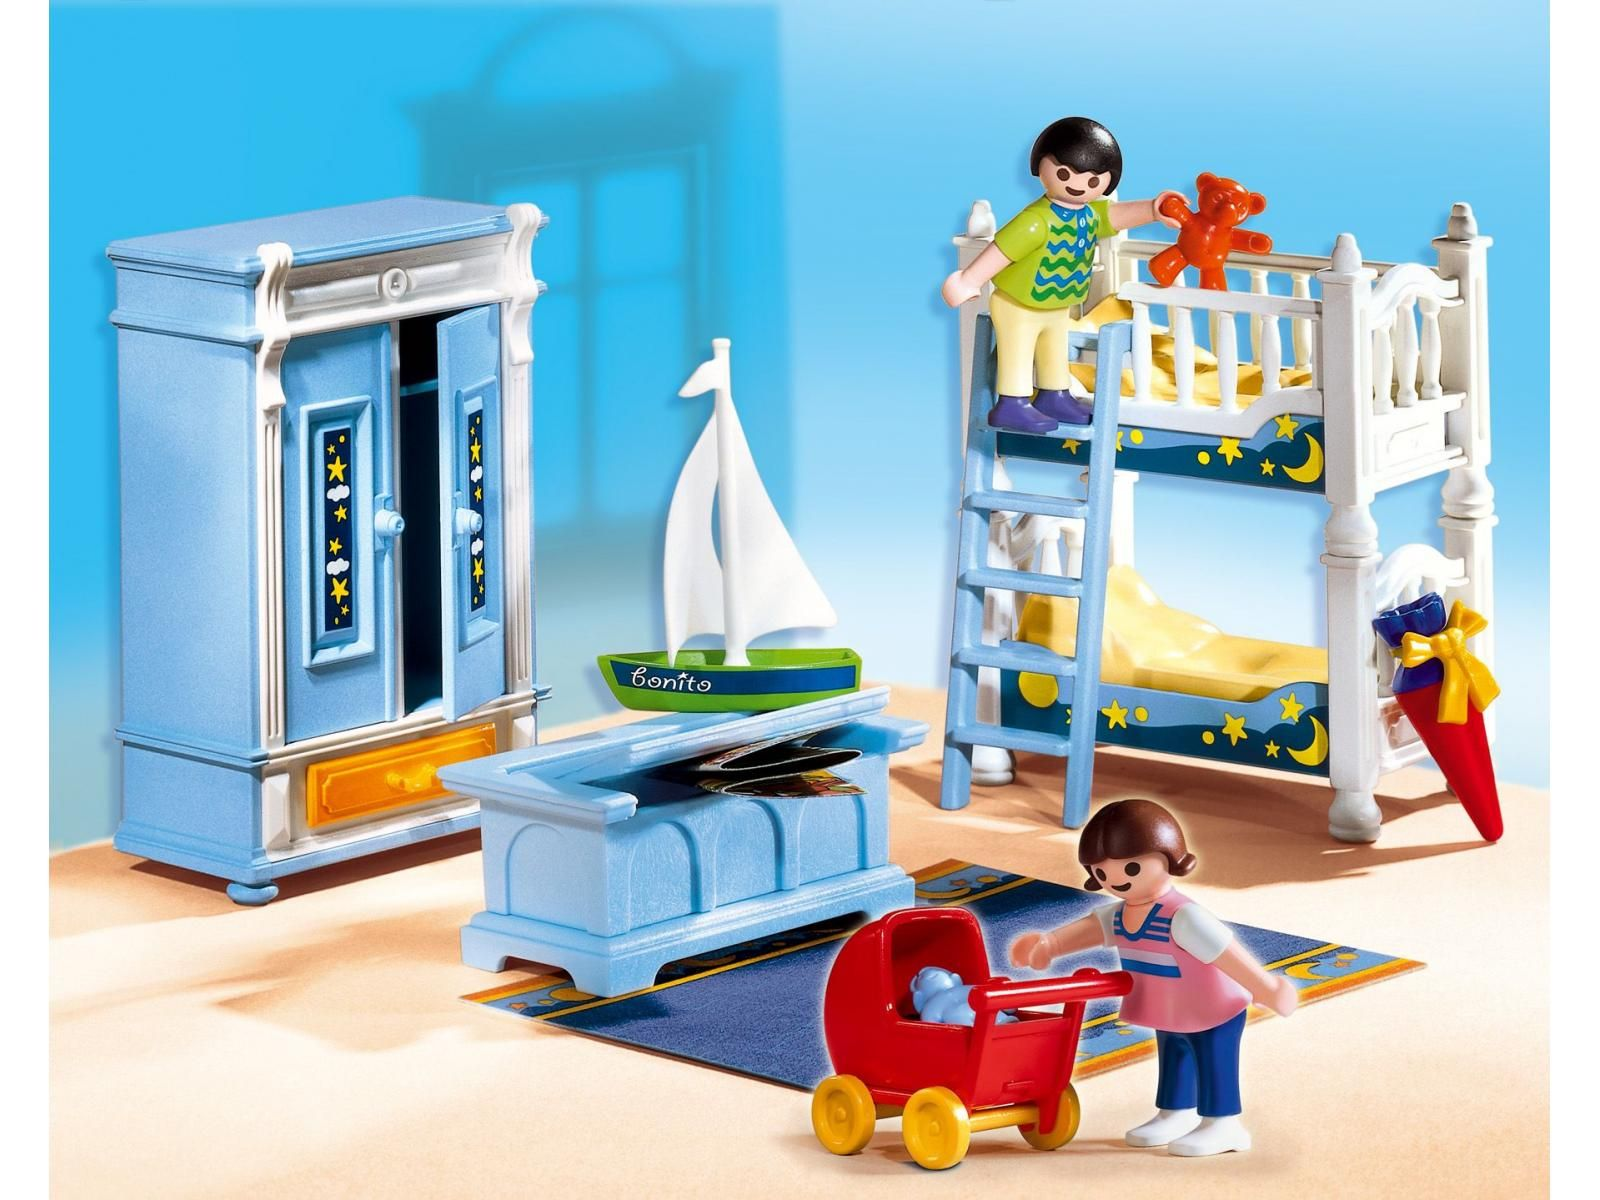 Playmobil 5328 enfants et chambre traditionnelle for Playmobil maison moderne cuisine